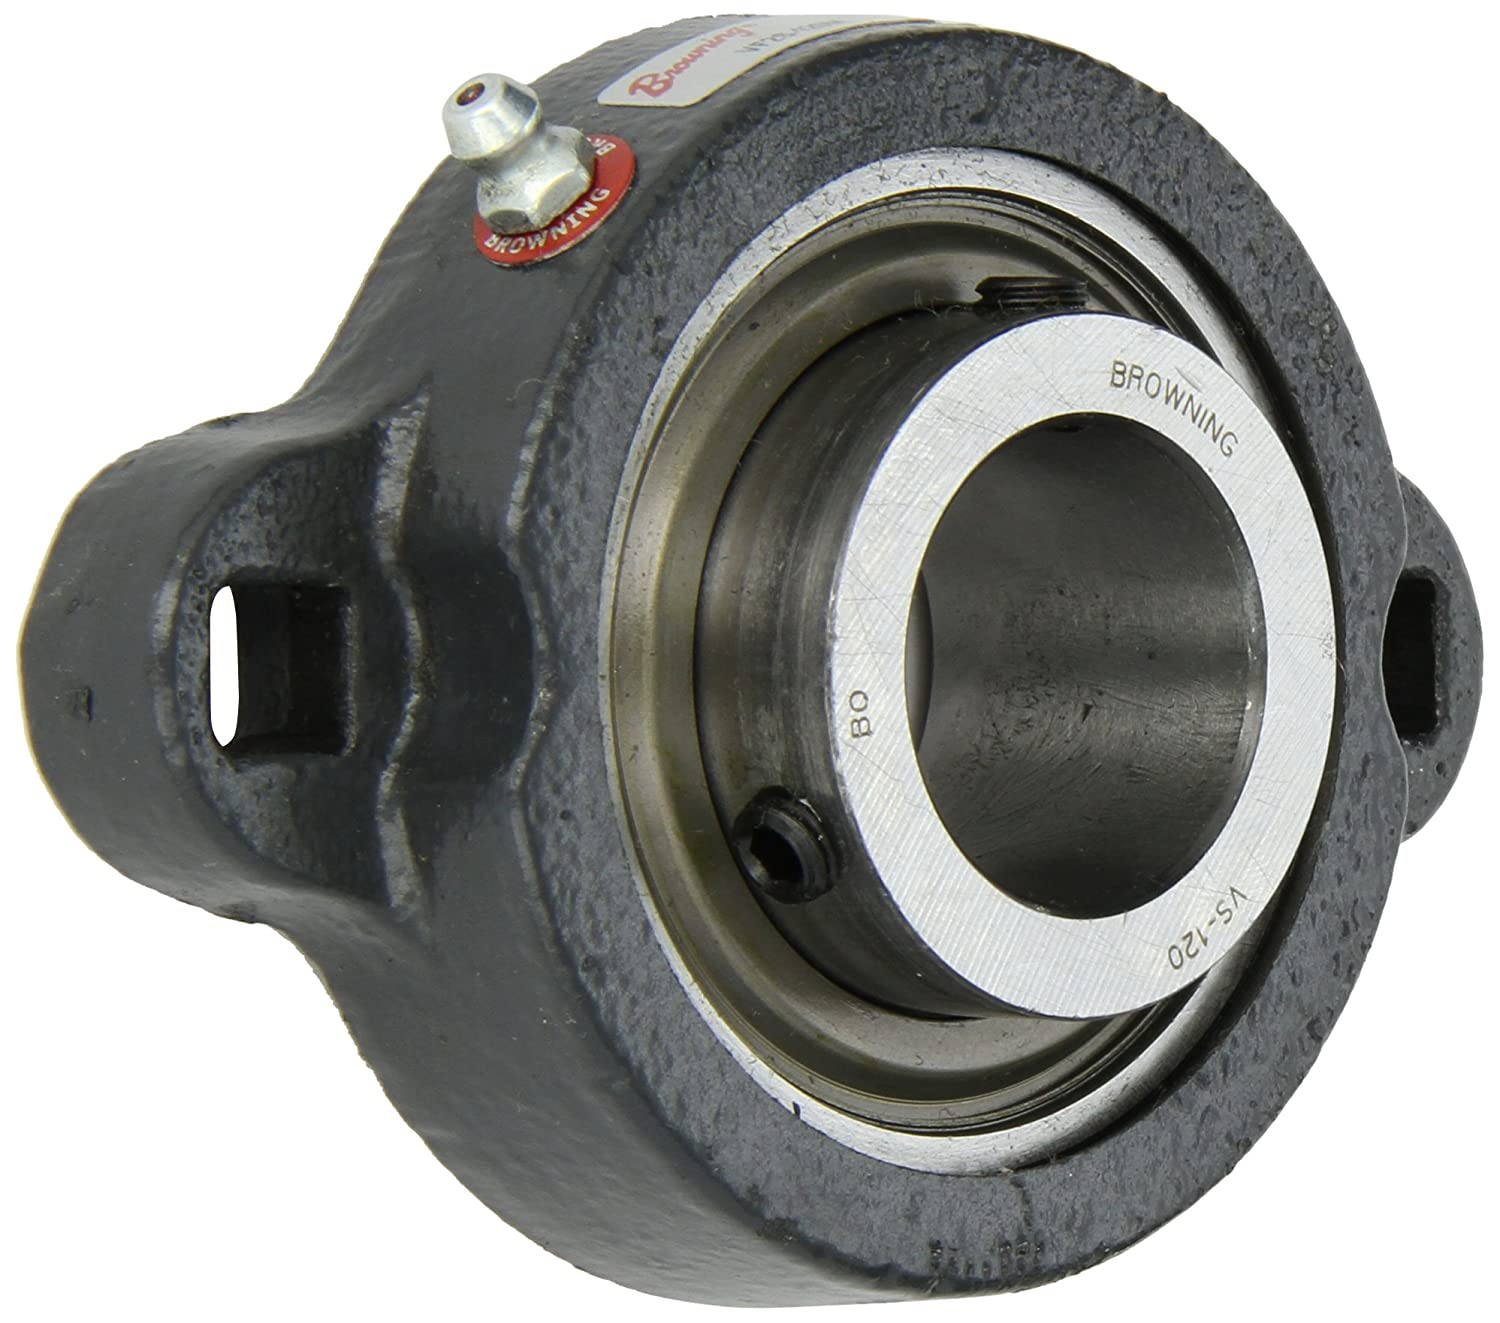 3-15//16 Bolt Hole Spacing Width Contact and Flinger Seal 2 Bolt Setscrew Lock 4-13//16 Overall Width Inch 1-1//4 Bore Ductile Iron Regreasable Browning VF2S-120M Intermediate-Duty Flange Unit